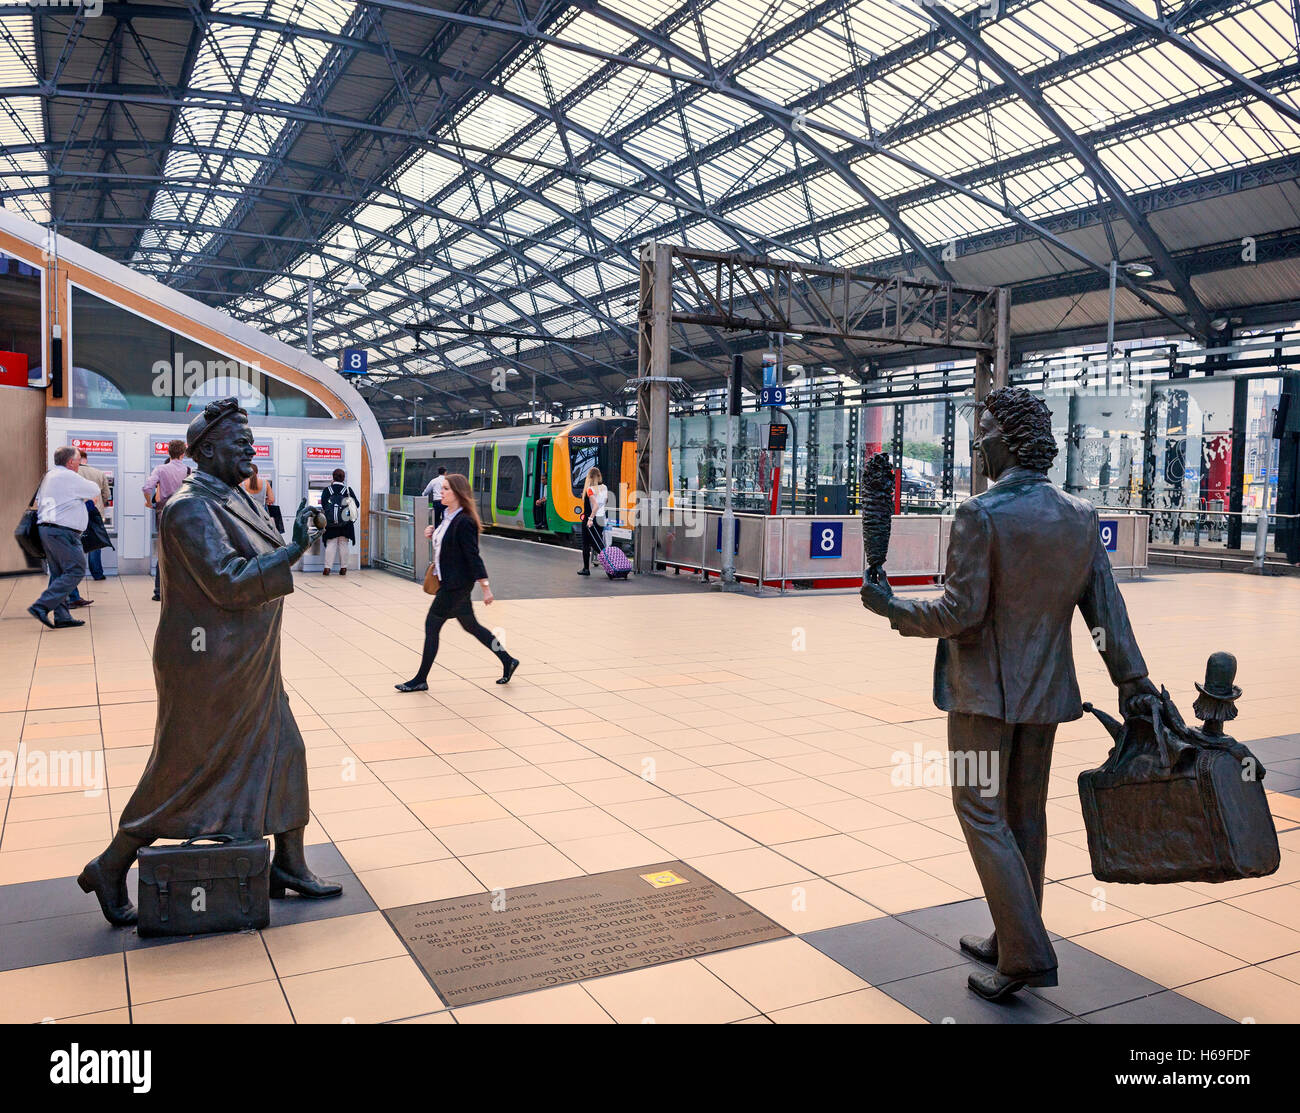 'Chance meeting', Sculpture Ken Dodd comedian and Bessie Braddock (MP) by Tom Murphy in Lime Street Railway - Stock Image